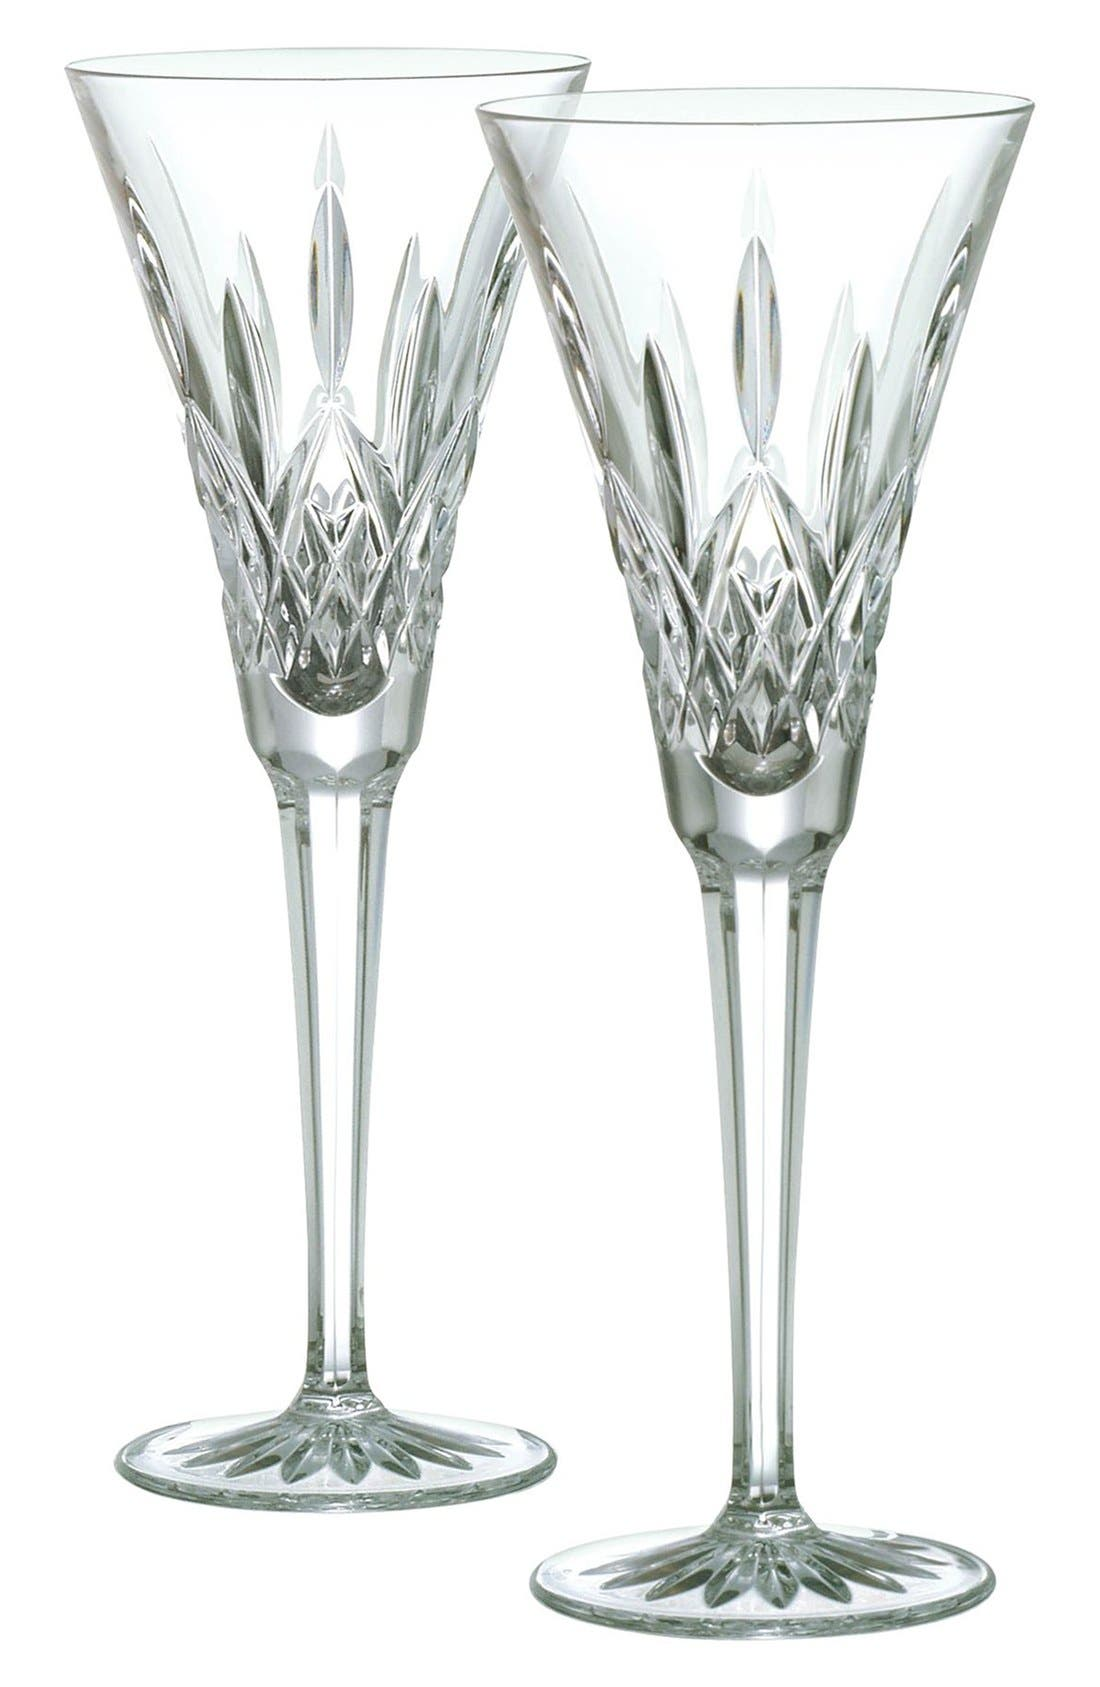 Alternate Image 1 Selected - Waterford 'Lismore' Lead Crystal Champagne Flutes (Set of 2)